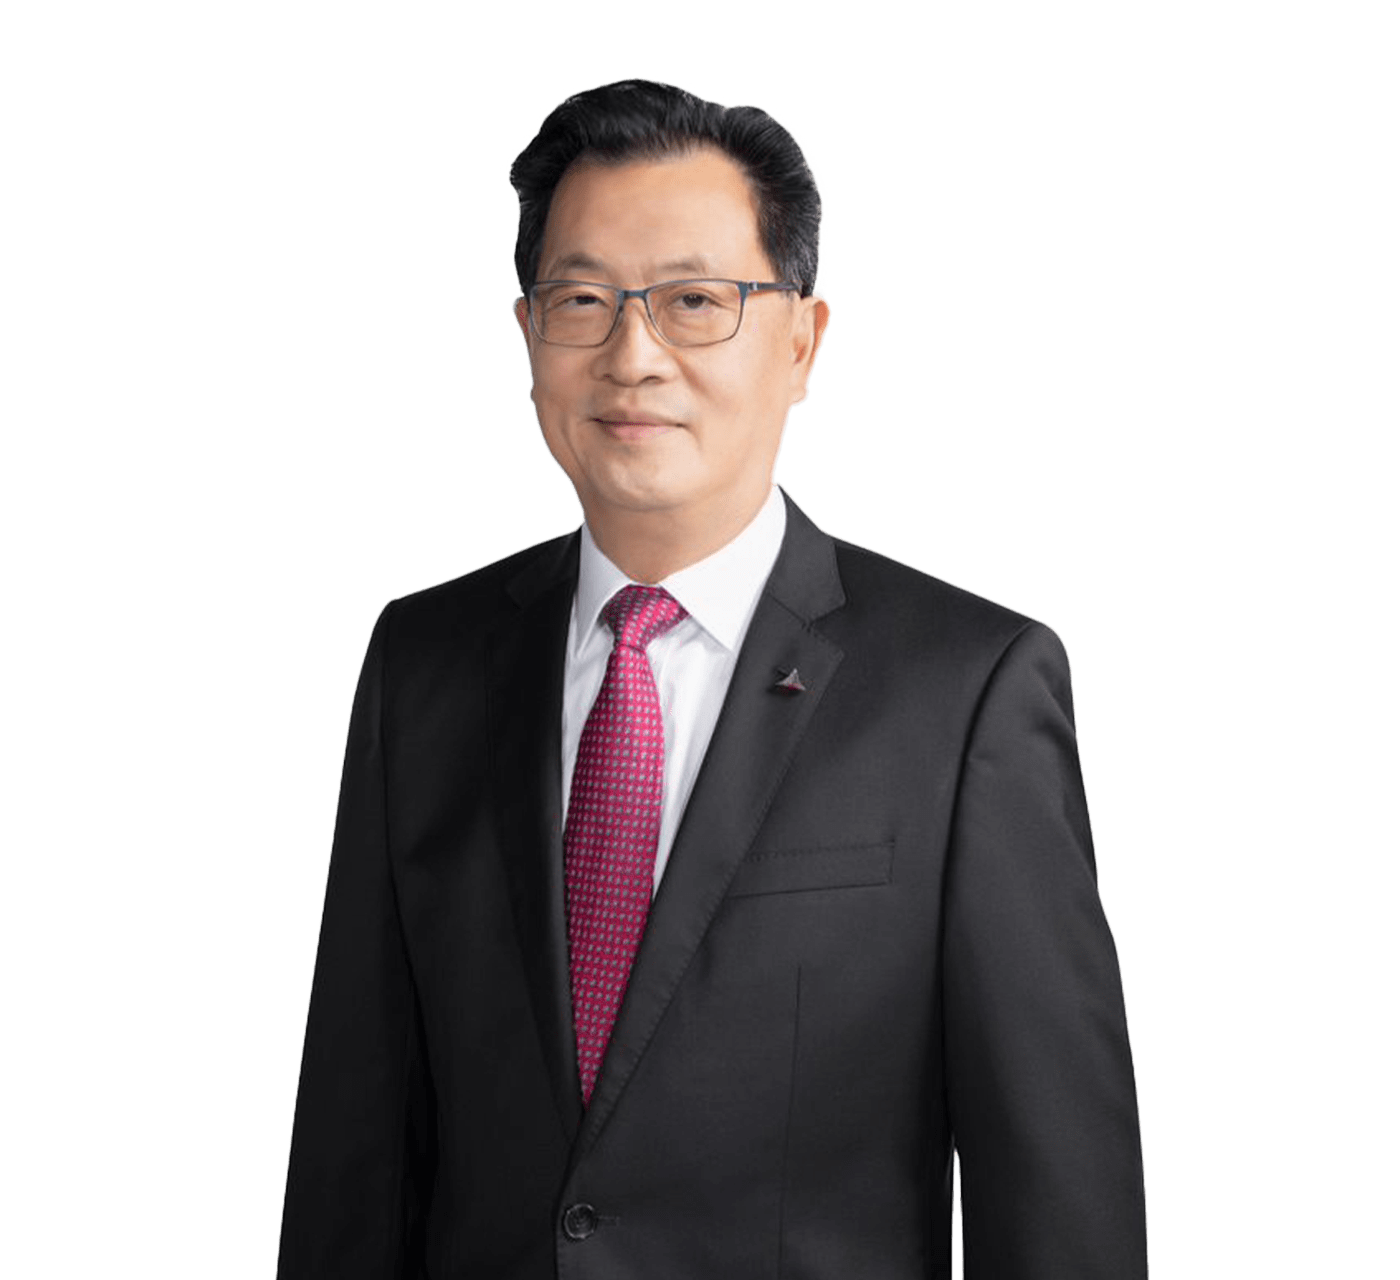 Mr. Boontuck Wungcharoen